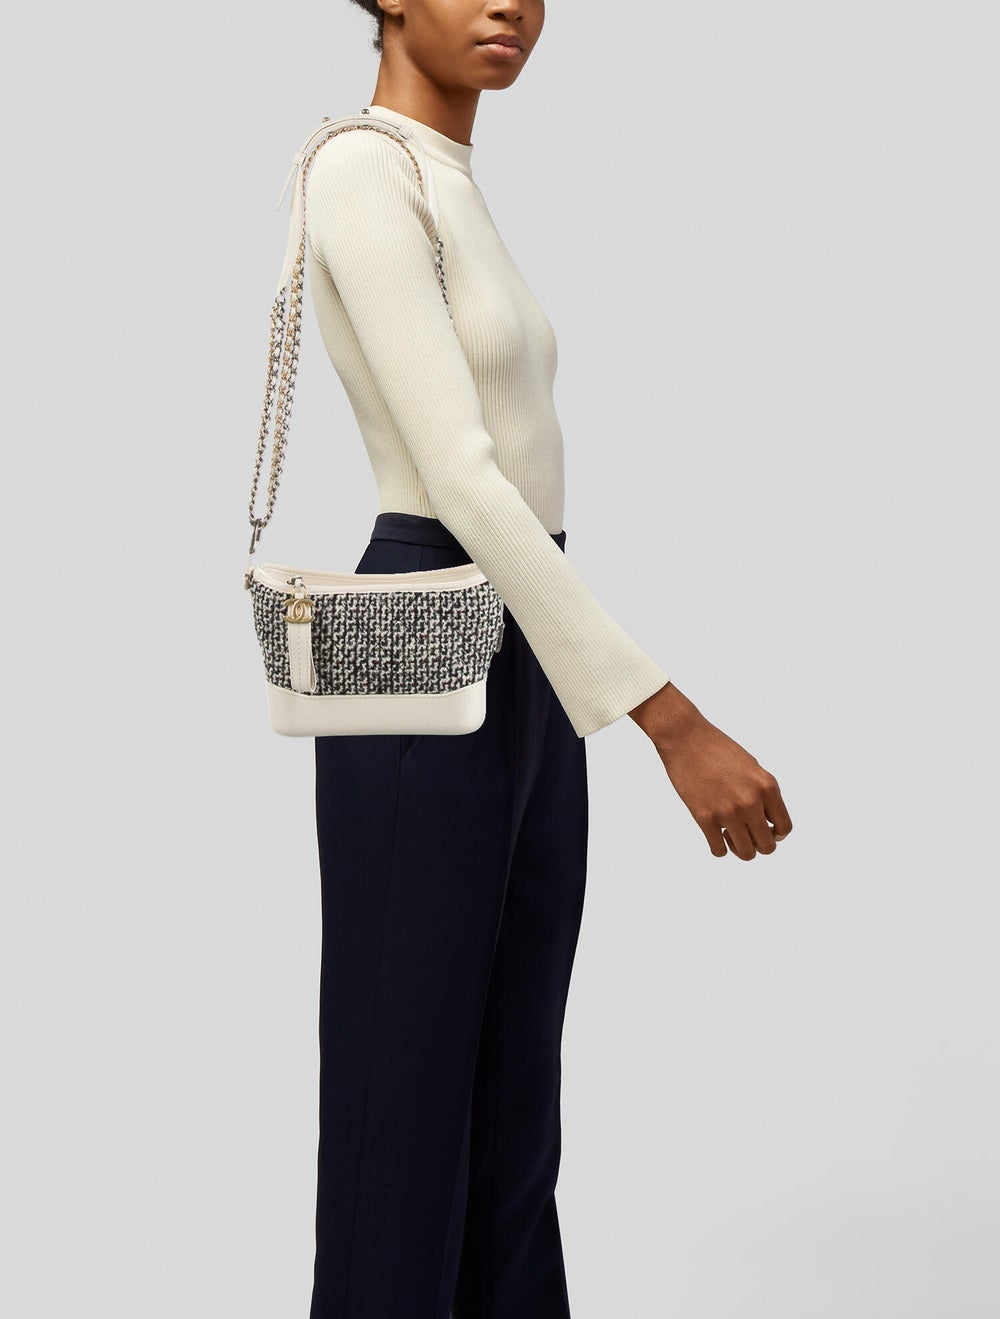 Chanel Tweed Small Gabrielle Bag Blue - image 2